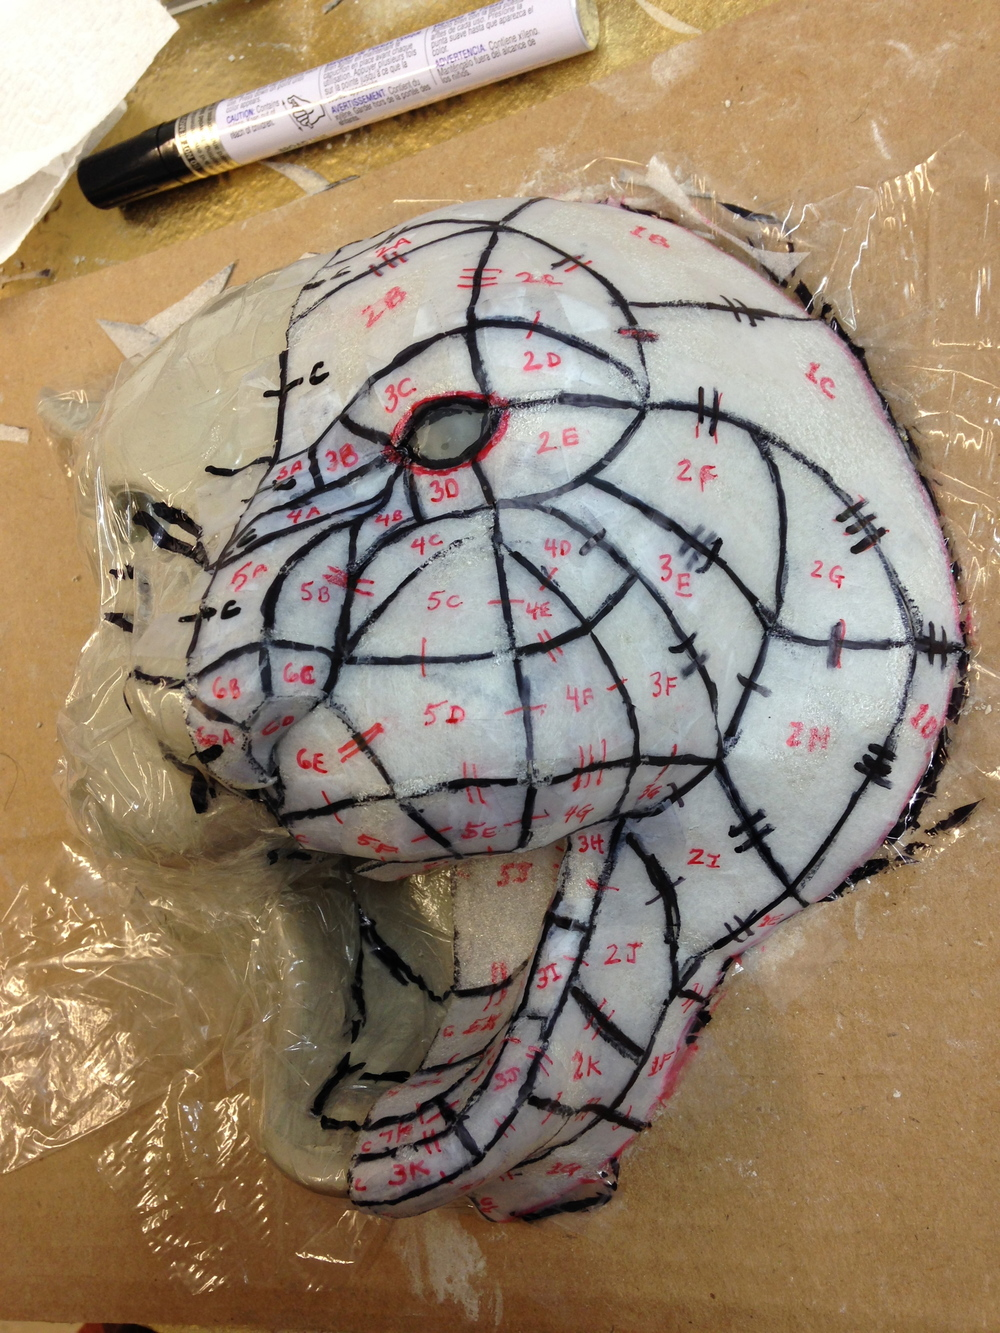 Tiger head patterns on a clay sculpture by Matthew McAvene